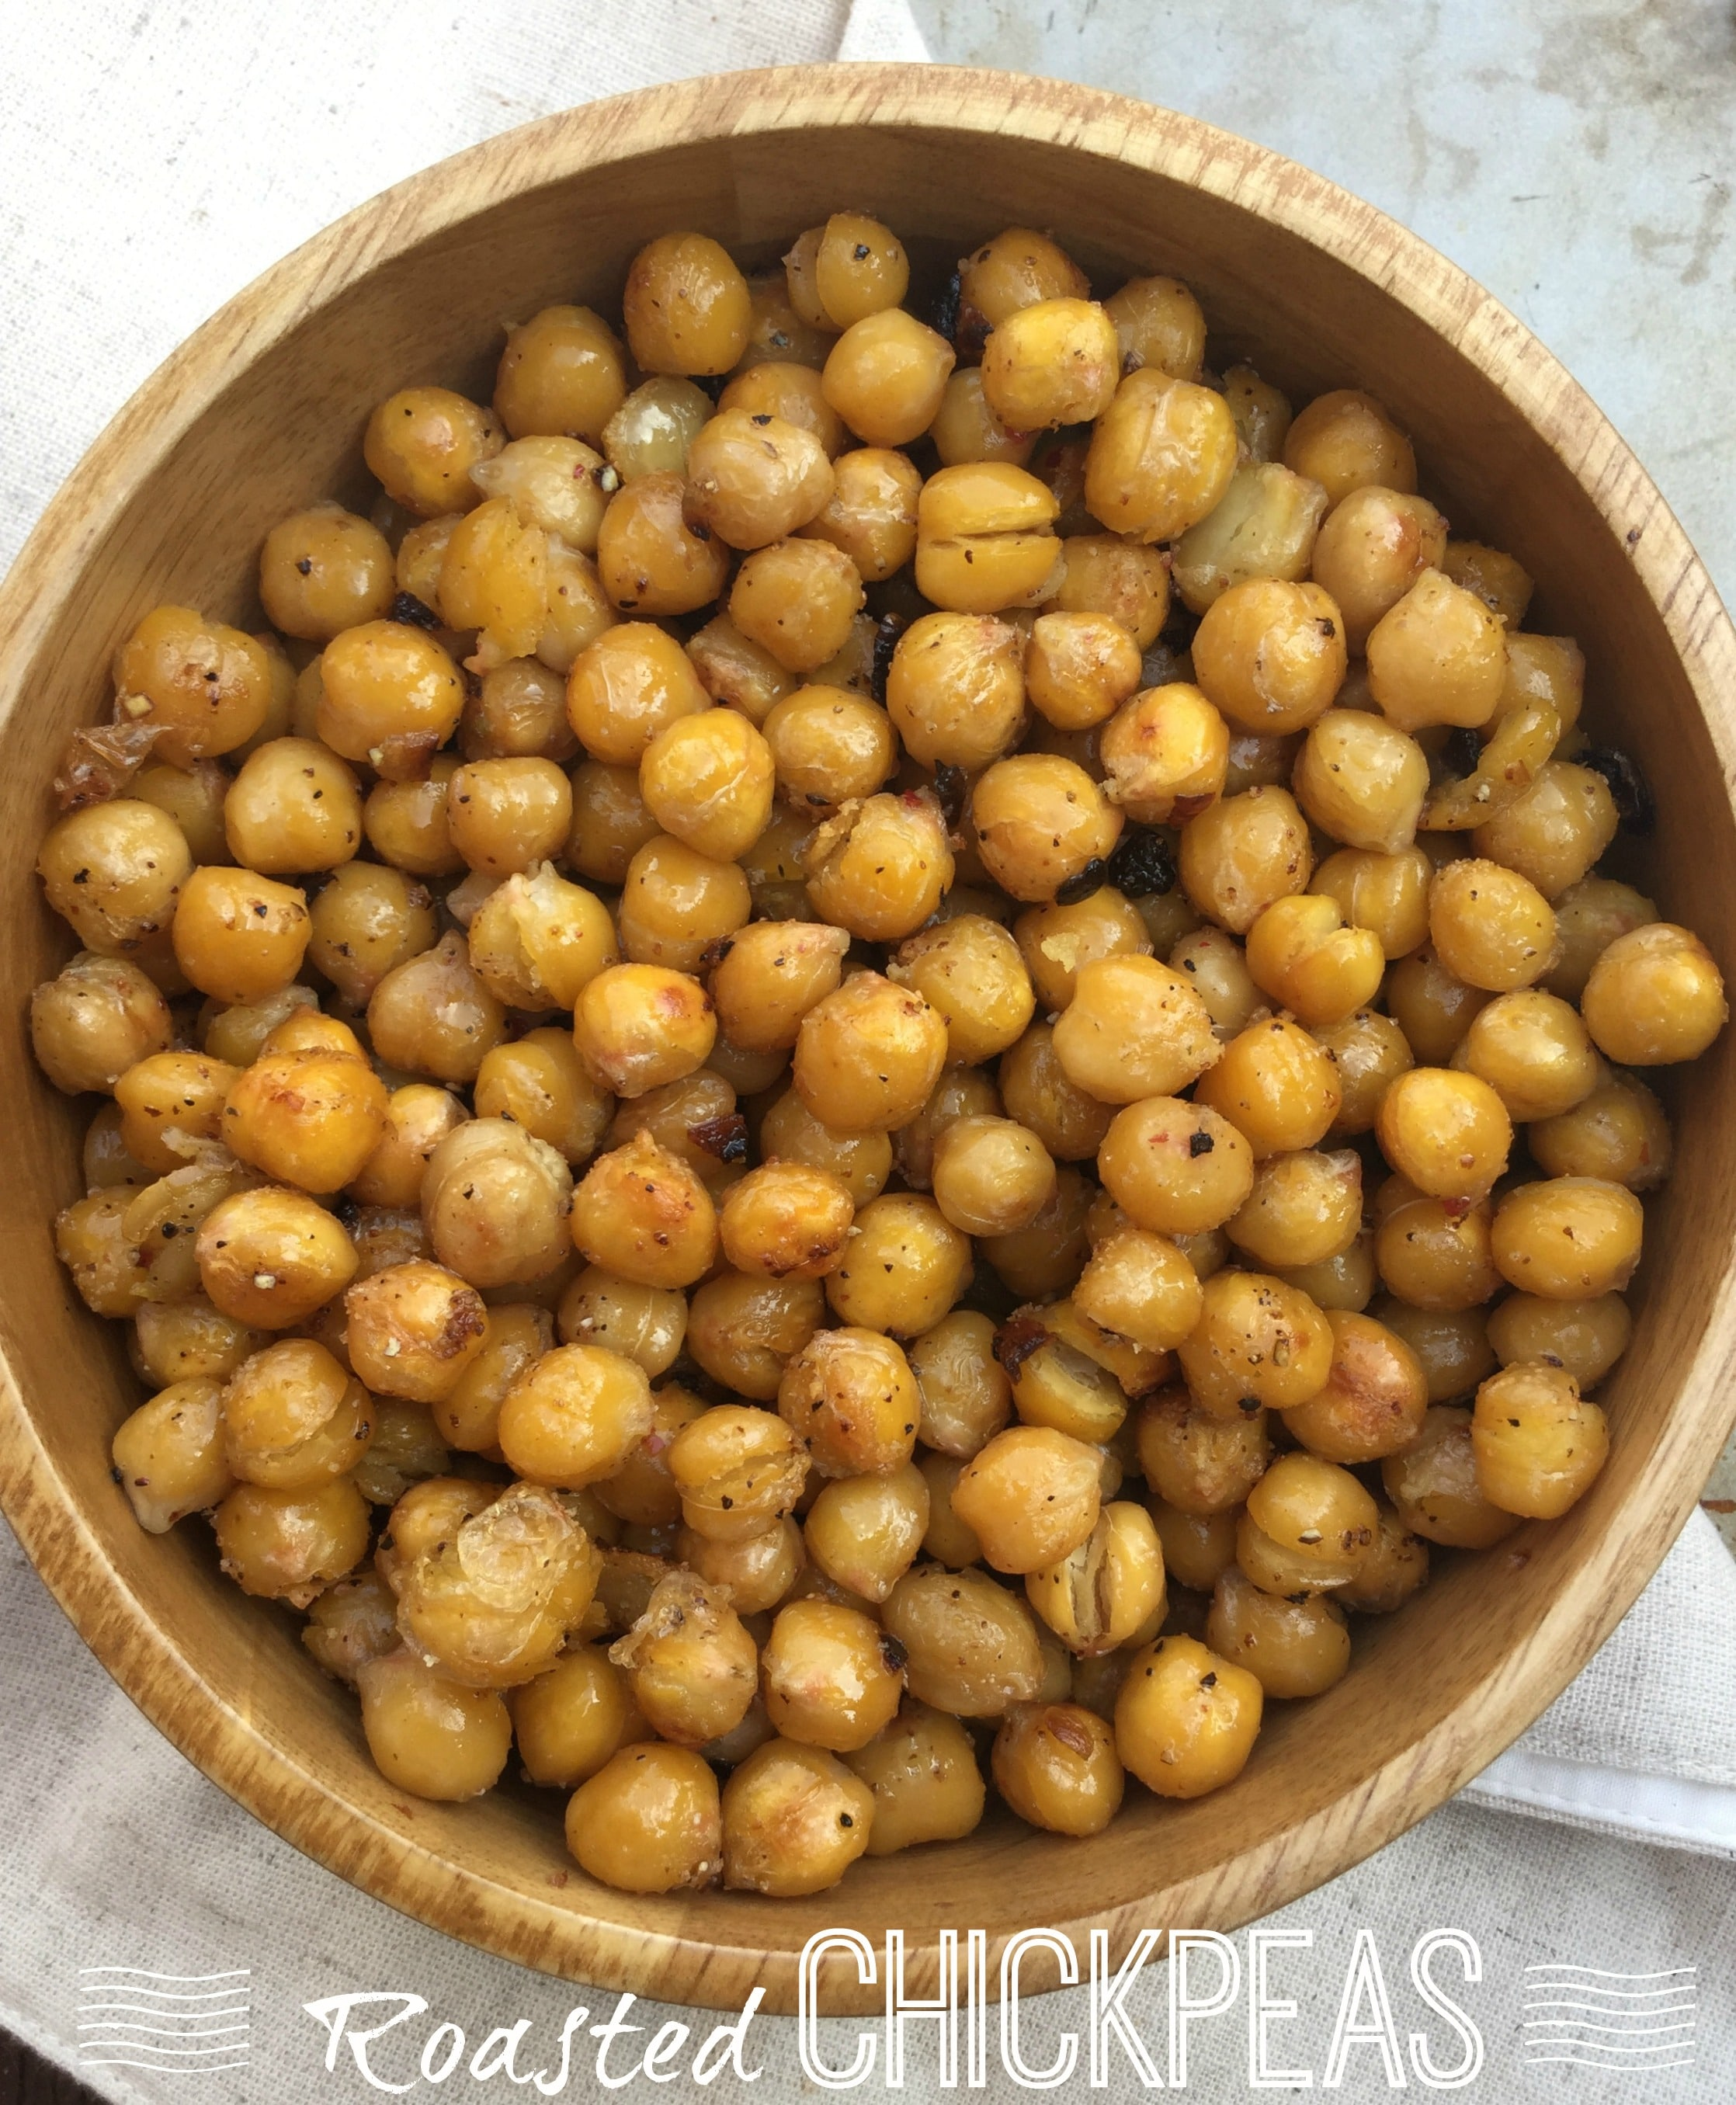 Oven roasted chickpeas deliciously flavored with garlic, chopped shallots and other spices. A great choice of healthy snack!